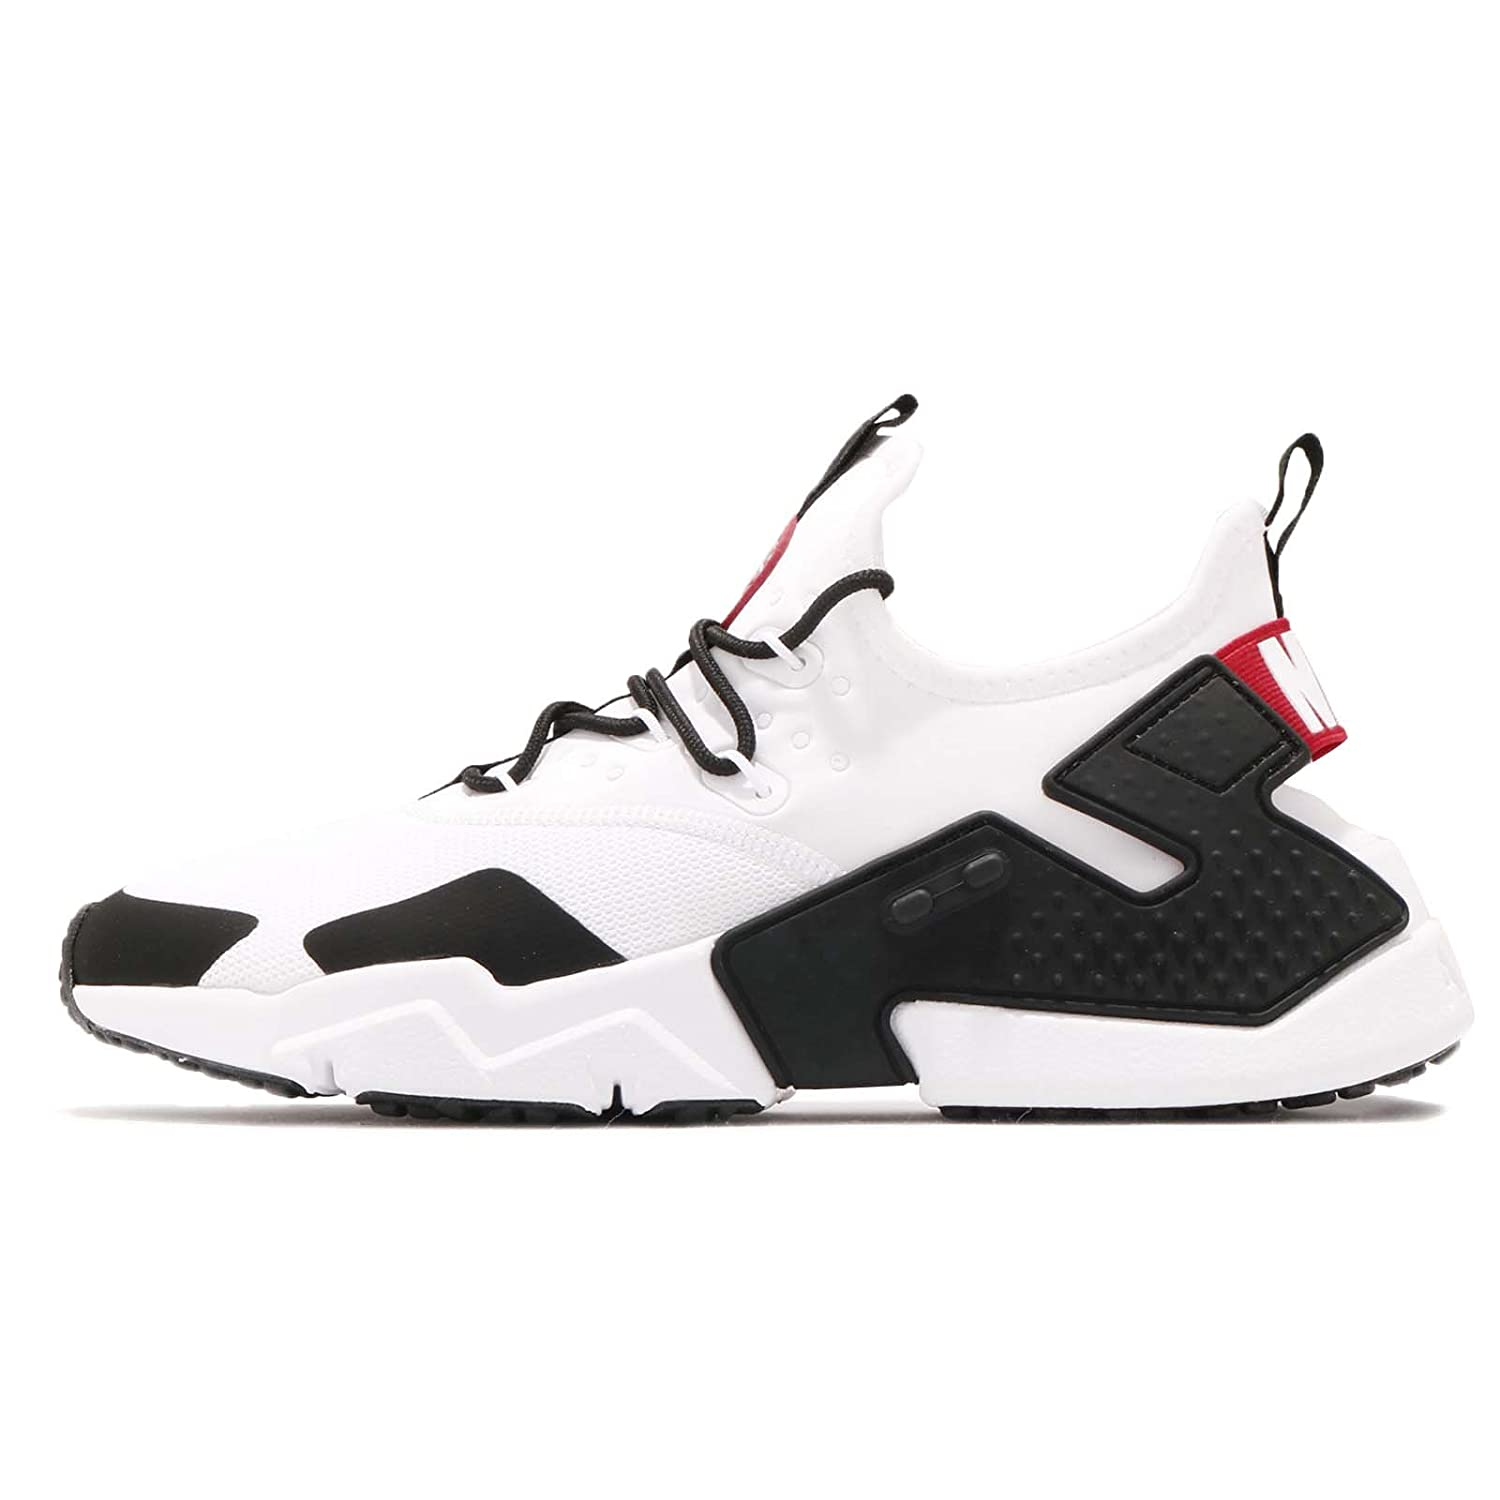 633bc73197f Nike Men's Air Huarache Drift Running Shoe, White/Gym Red-Black-White, 11